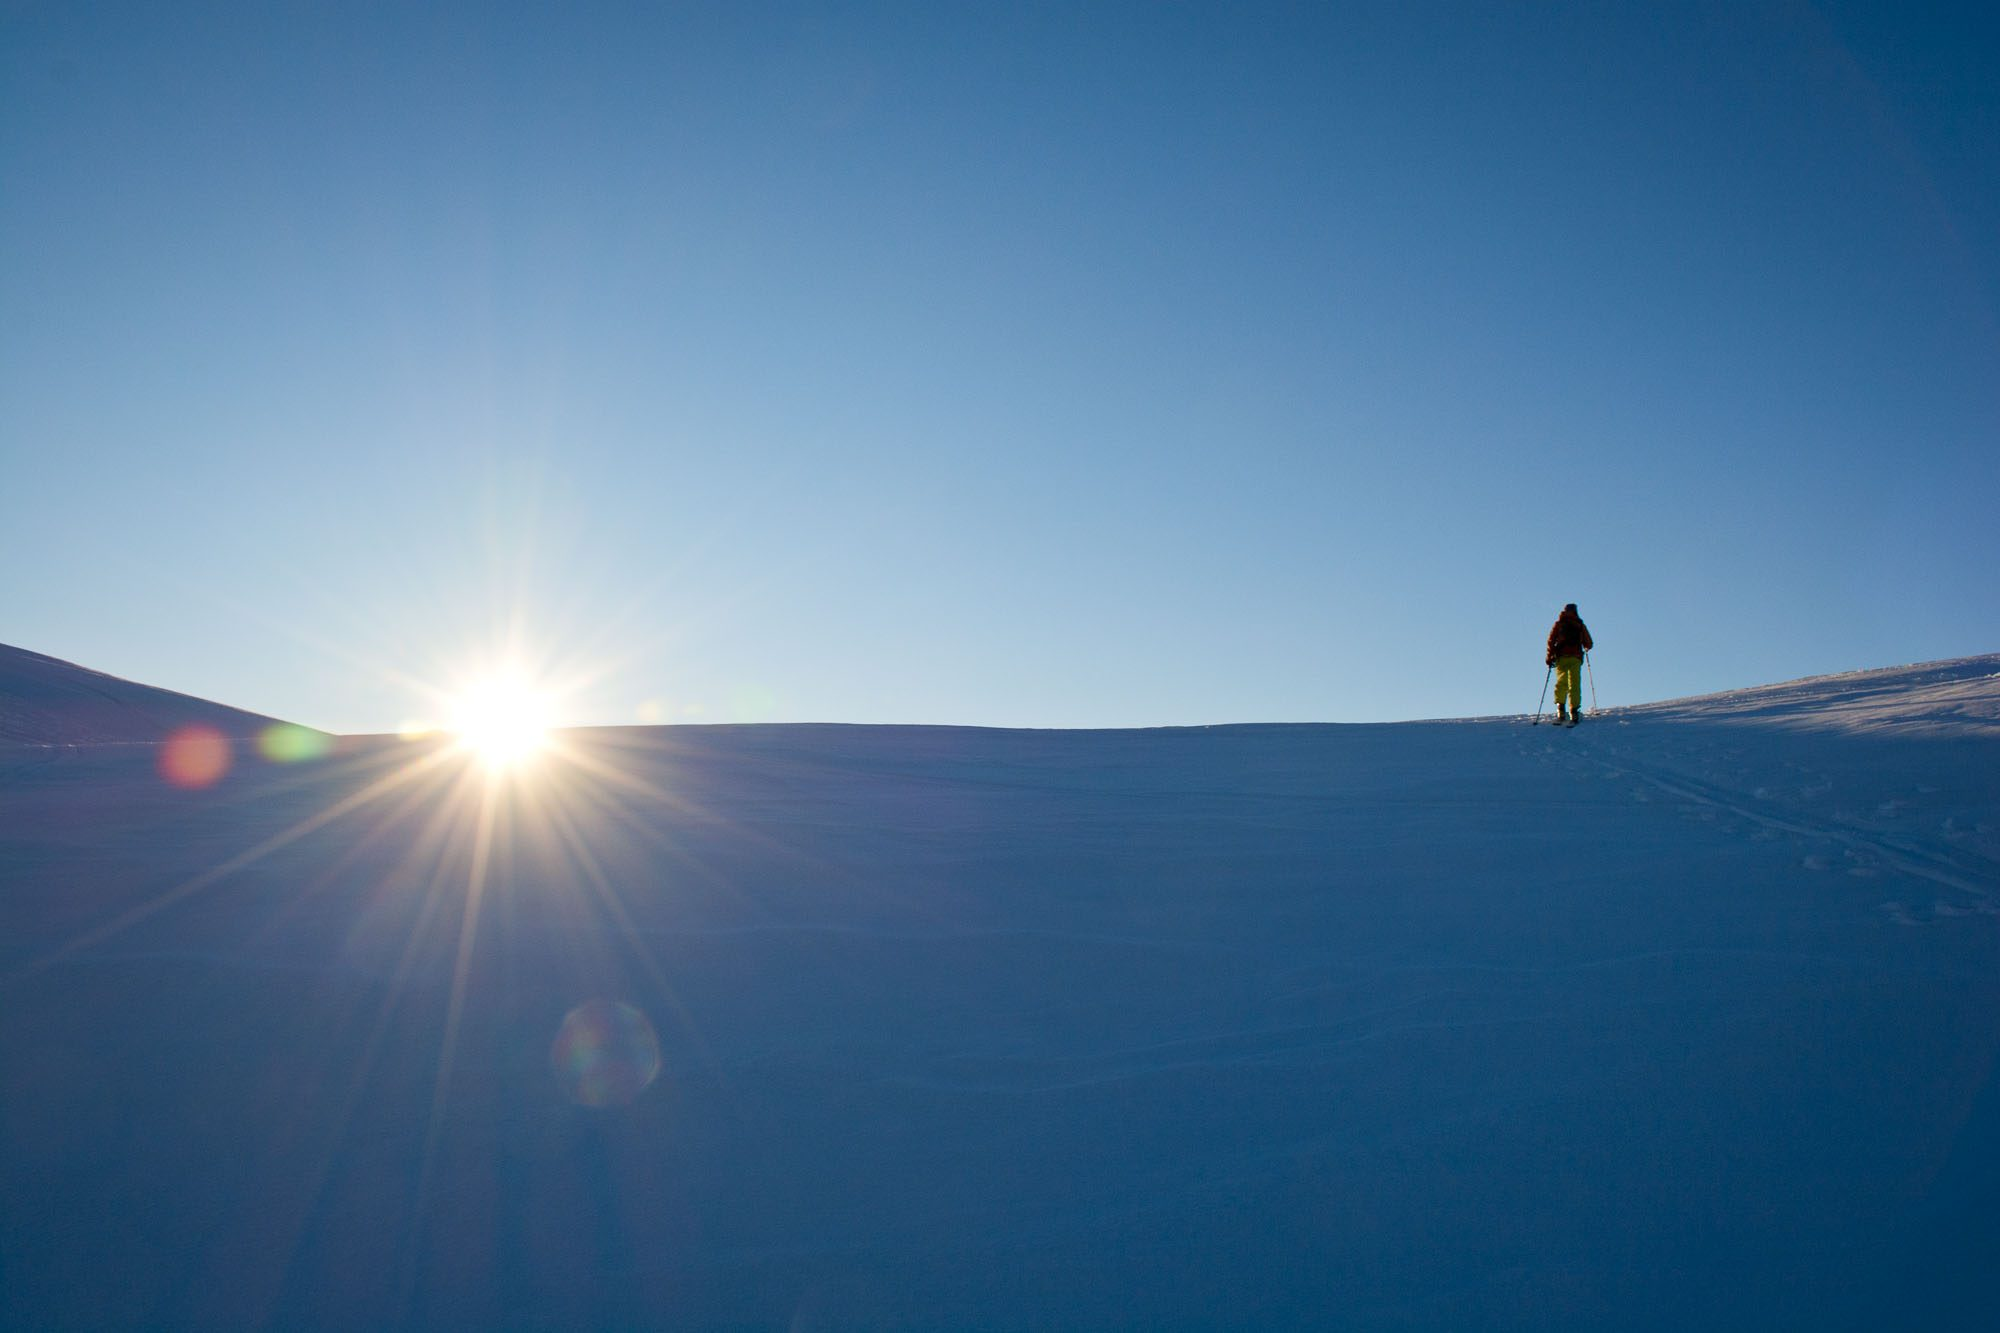 Ski touring into the sunset from La Masse to Le Chatelard